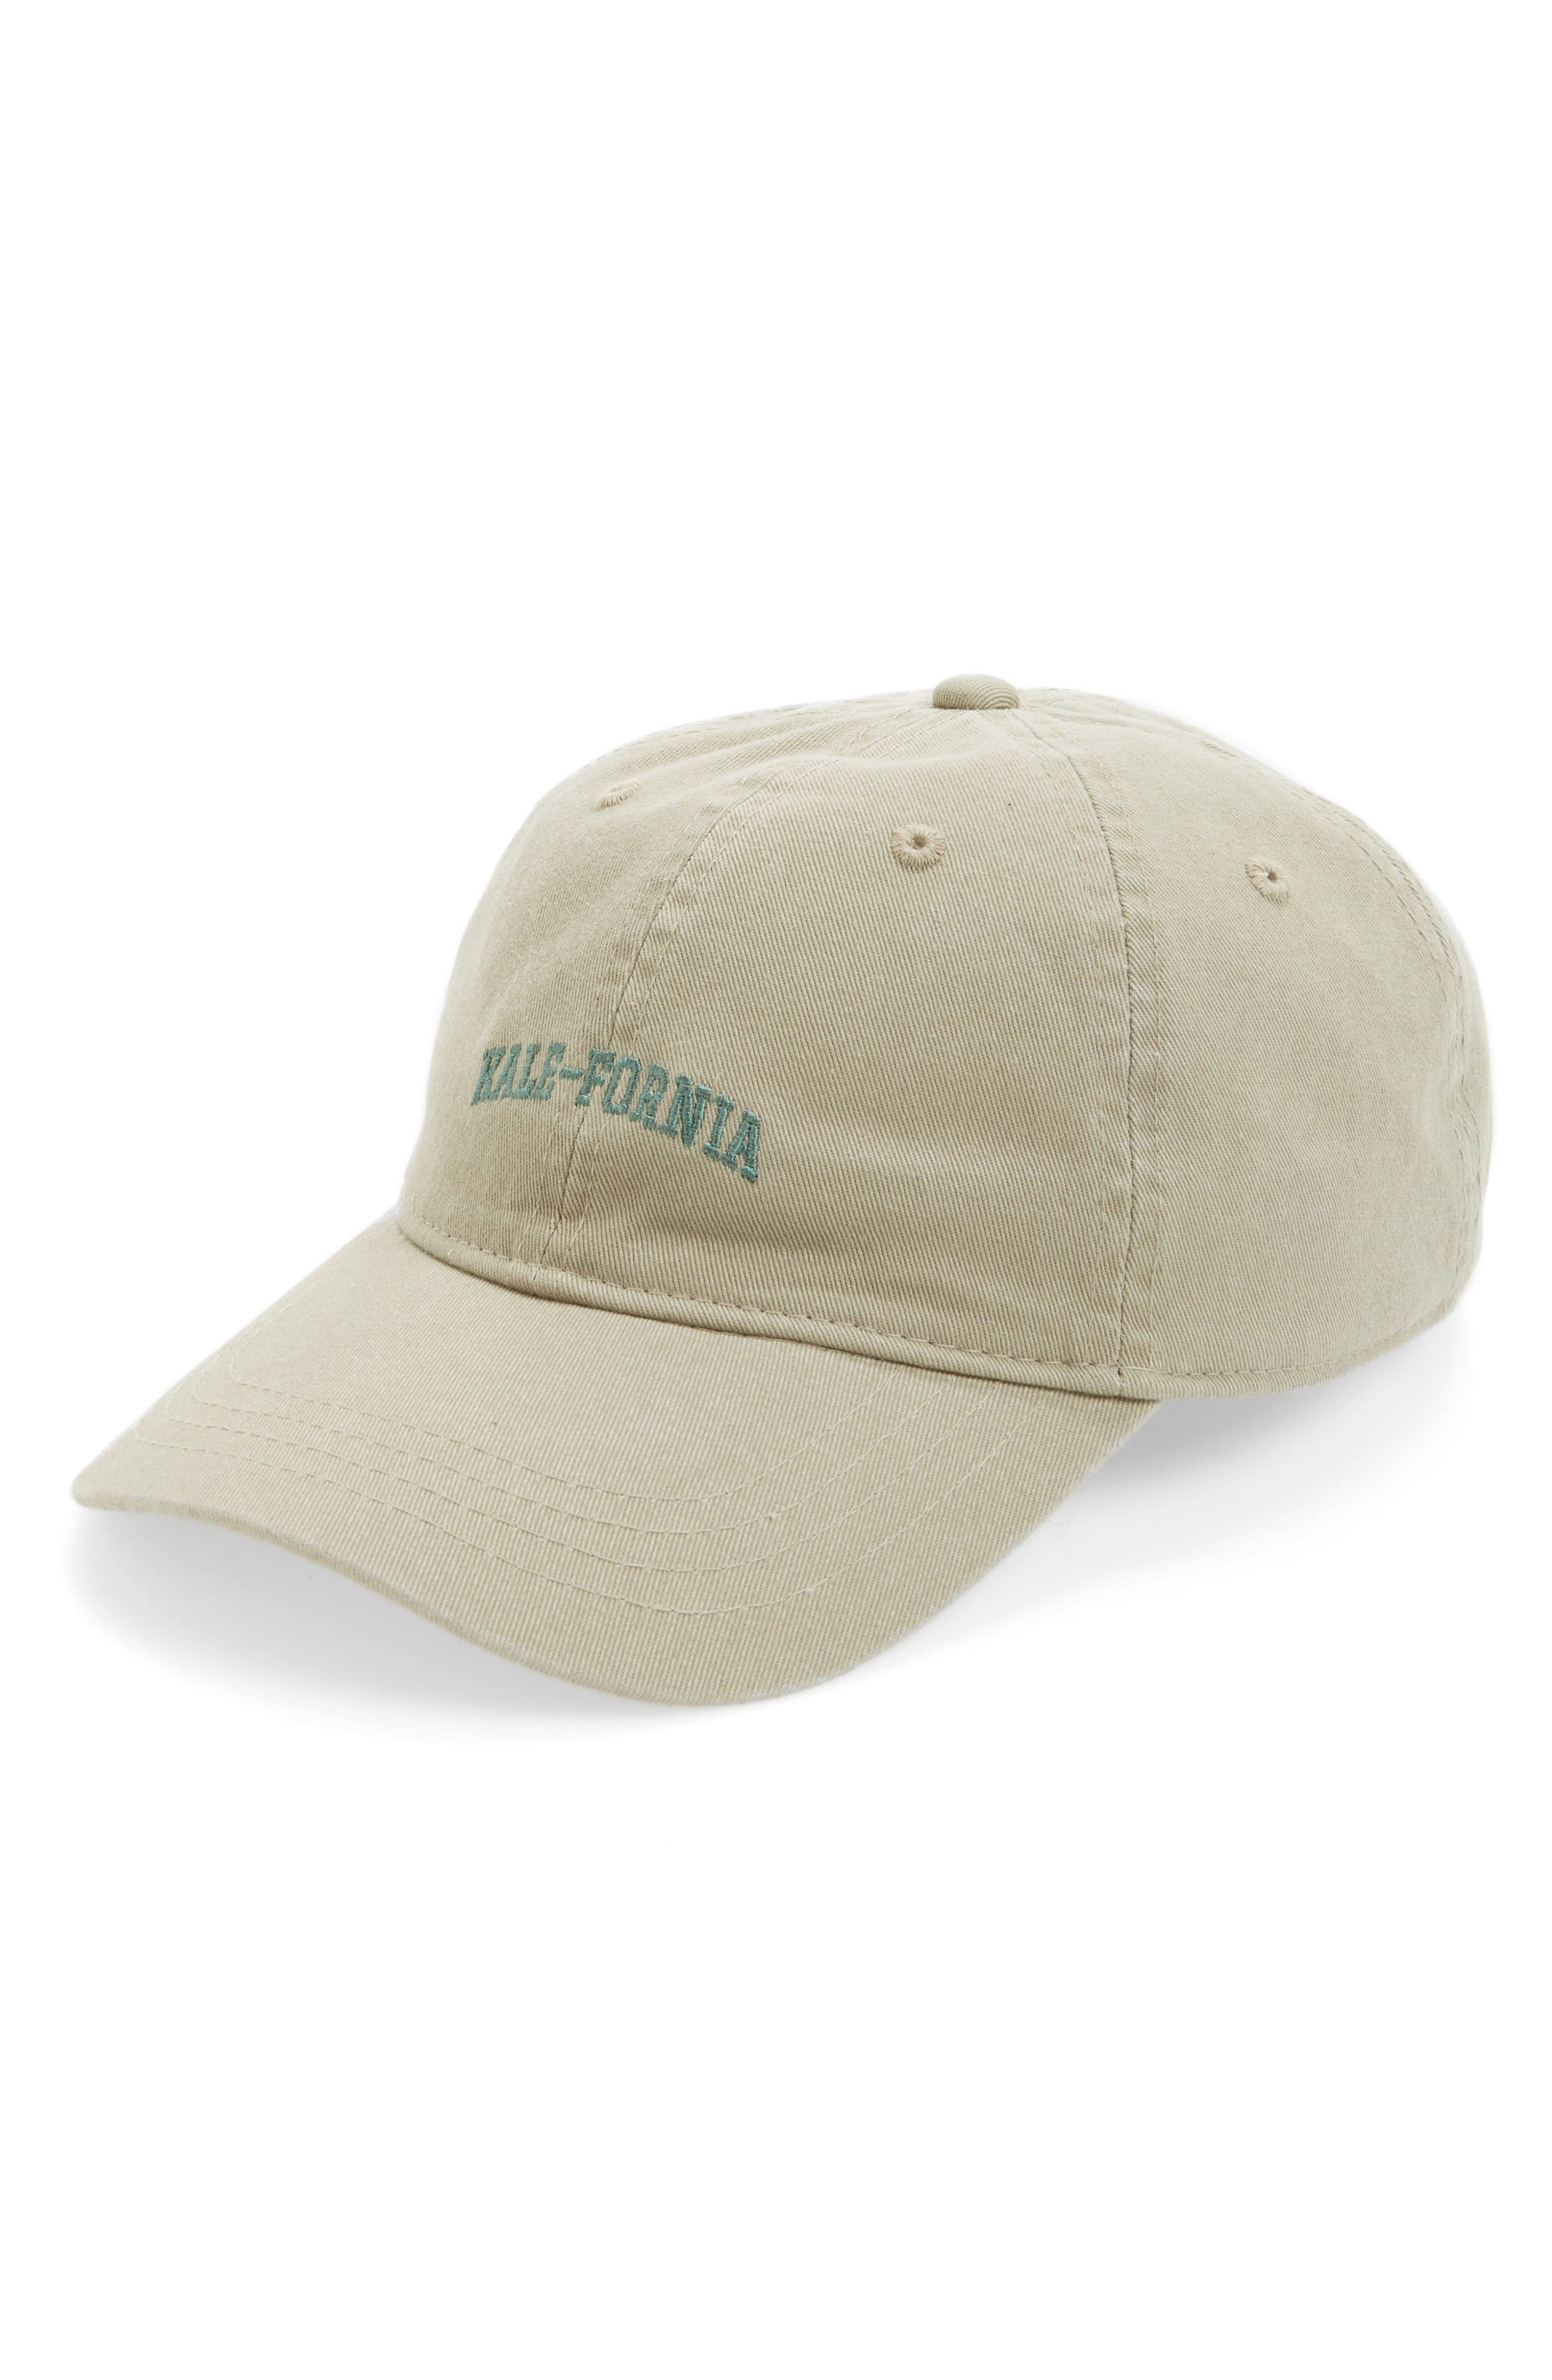 Main Image - Body Rags Clothing Co. Twill Dad Kale-Fornia Cap